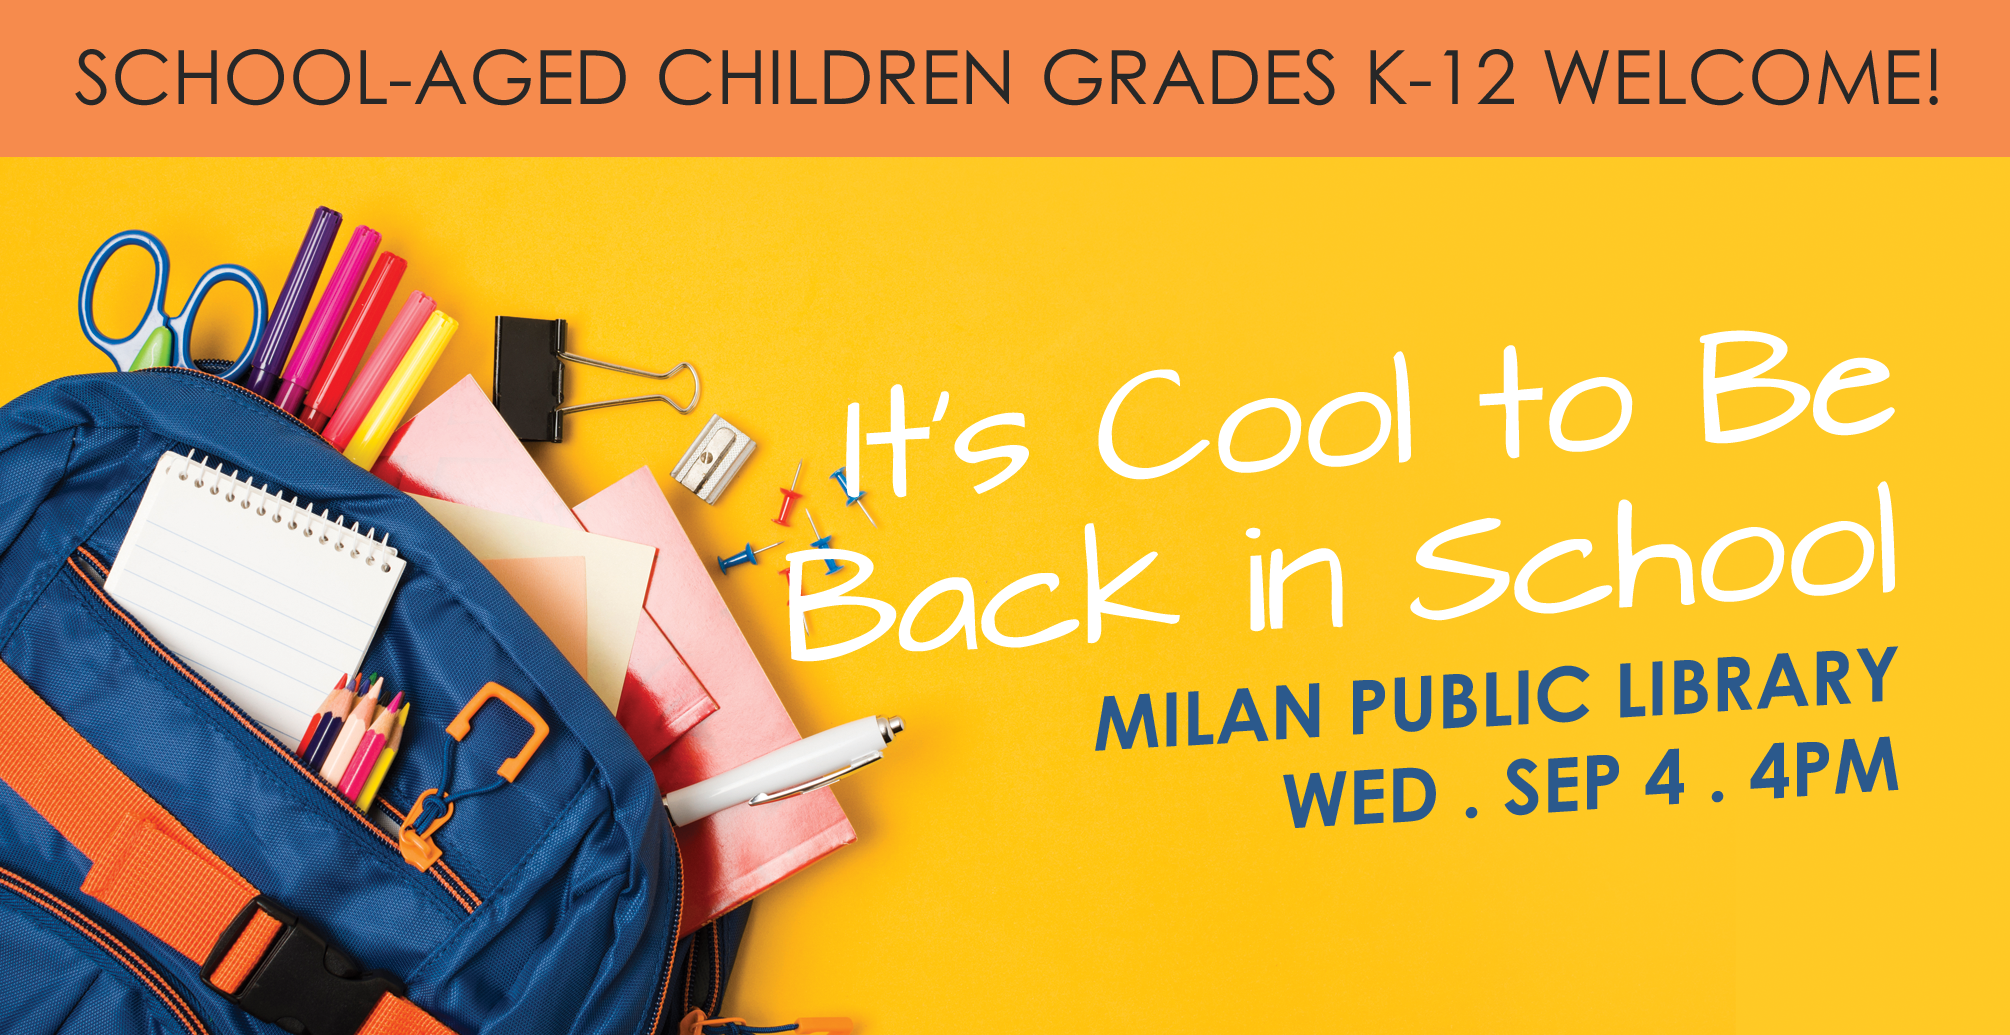 2019-09-CHILDRENS-Milan-Its-Cool-to-Be-Back-in-School-Slide